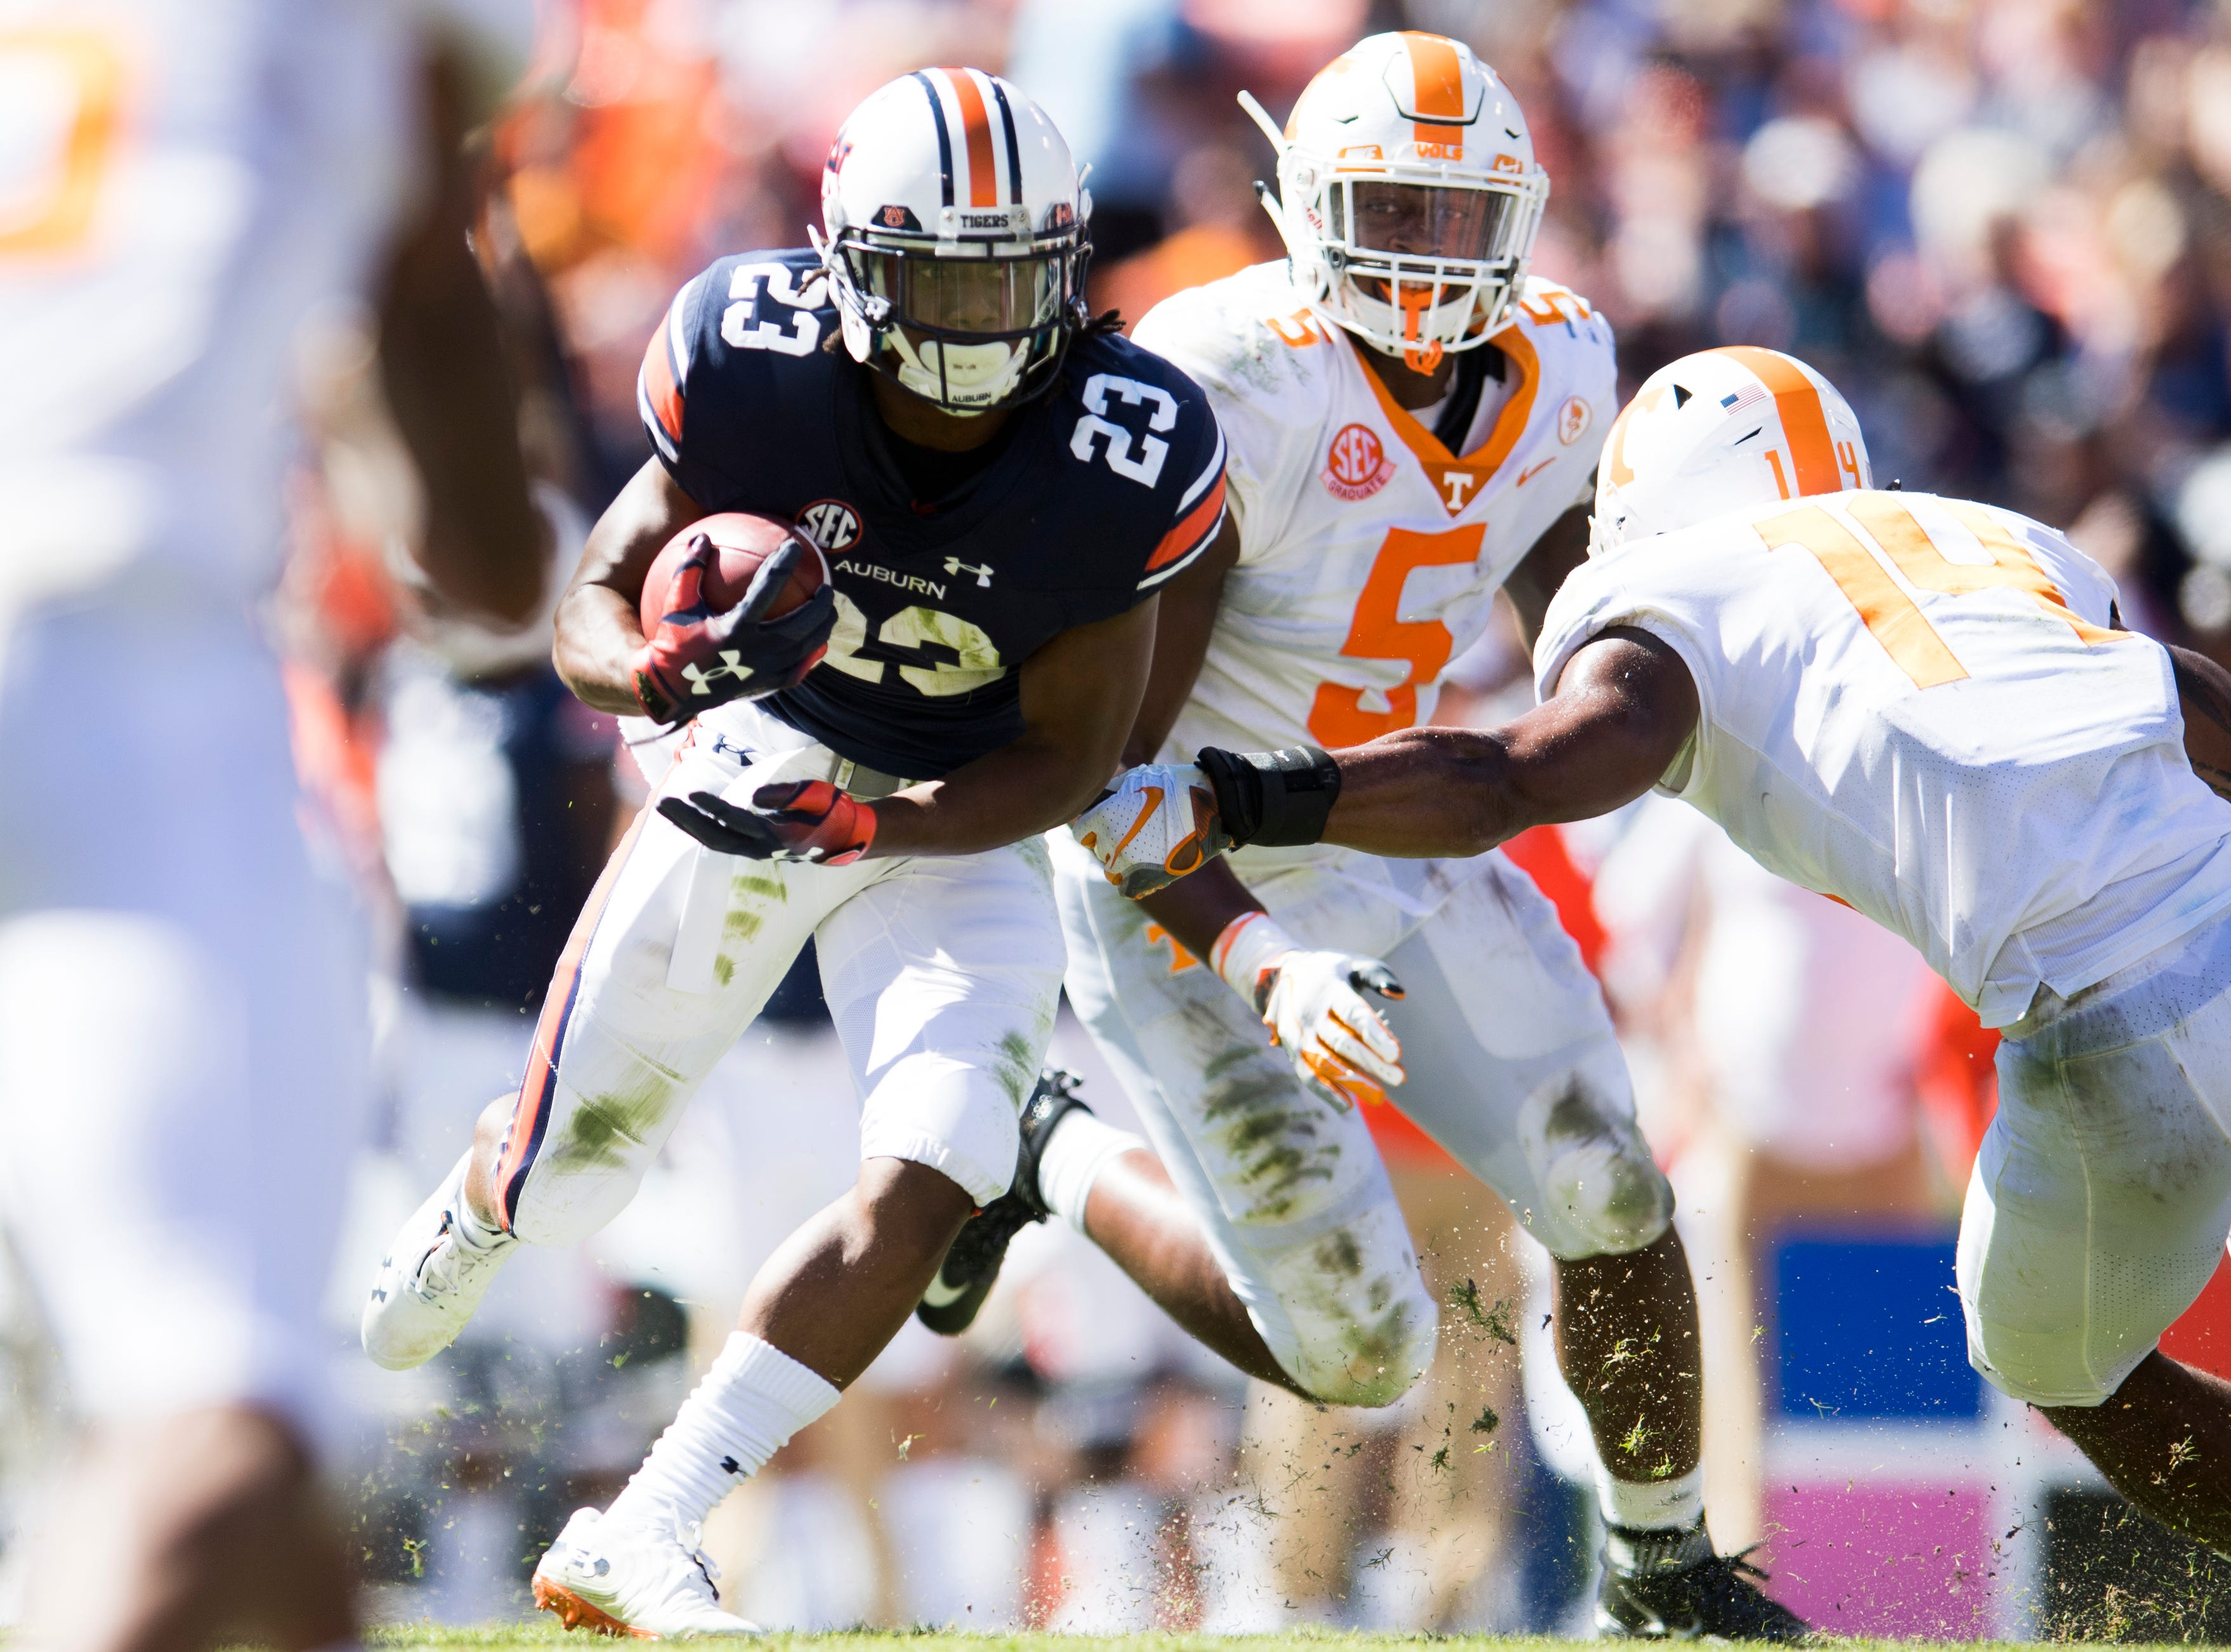 Auburn wide receiver Ryan Davis (23) tries to evade Tennessee linebacker Quart'e Sapp (14) and Tennessee defensive lineman Kyle Phillips (5) during a game between Tennessee and Auburn at Jordan-Hare Stadium in Auburn, Alabama on Saturday, October 13, 2018.